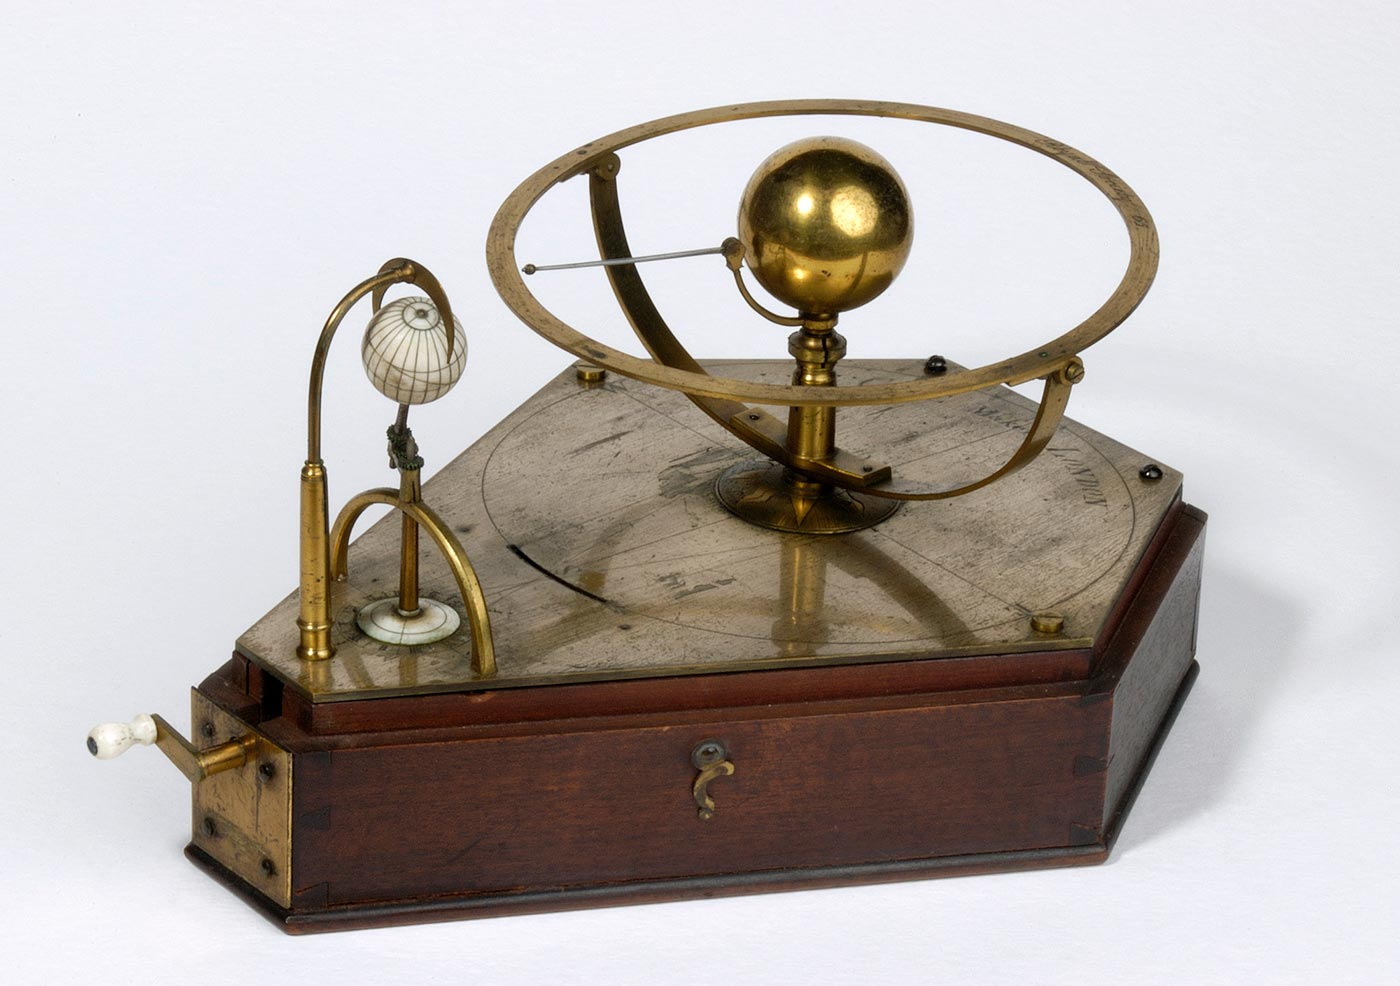 Orrery (mechanical planetarium) demonstrating the transit of Venus, about 1760, made by Benjamin Cole, London.